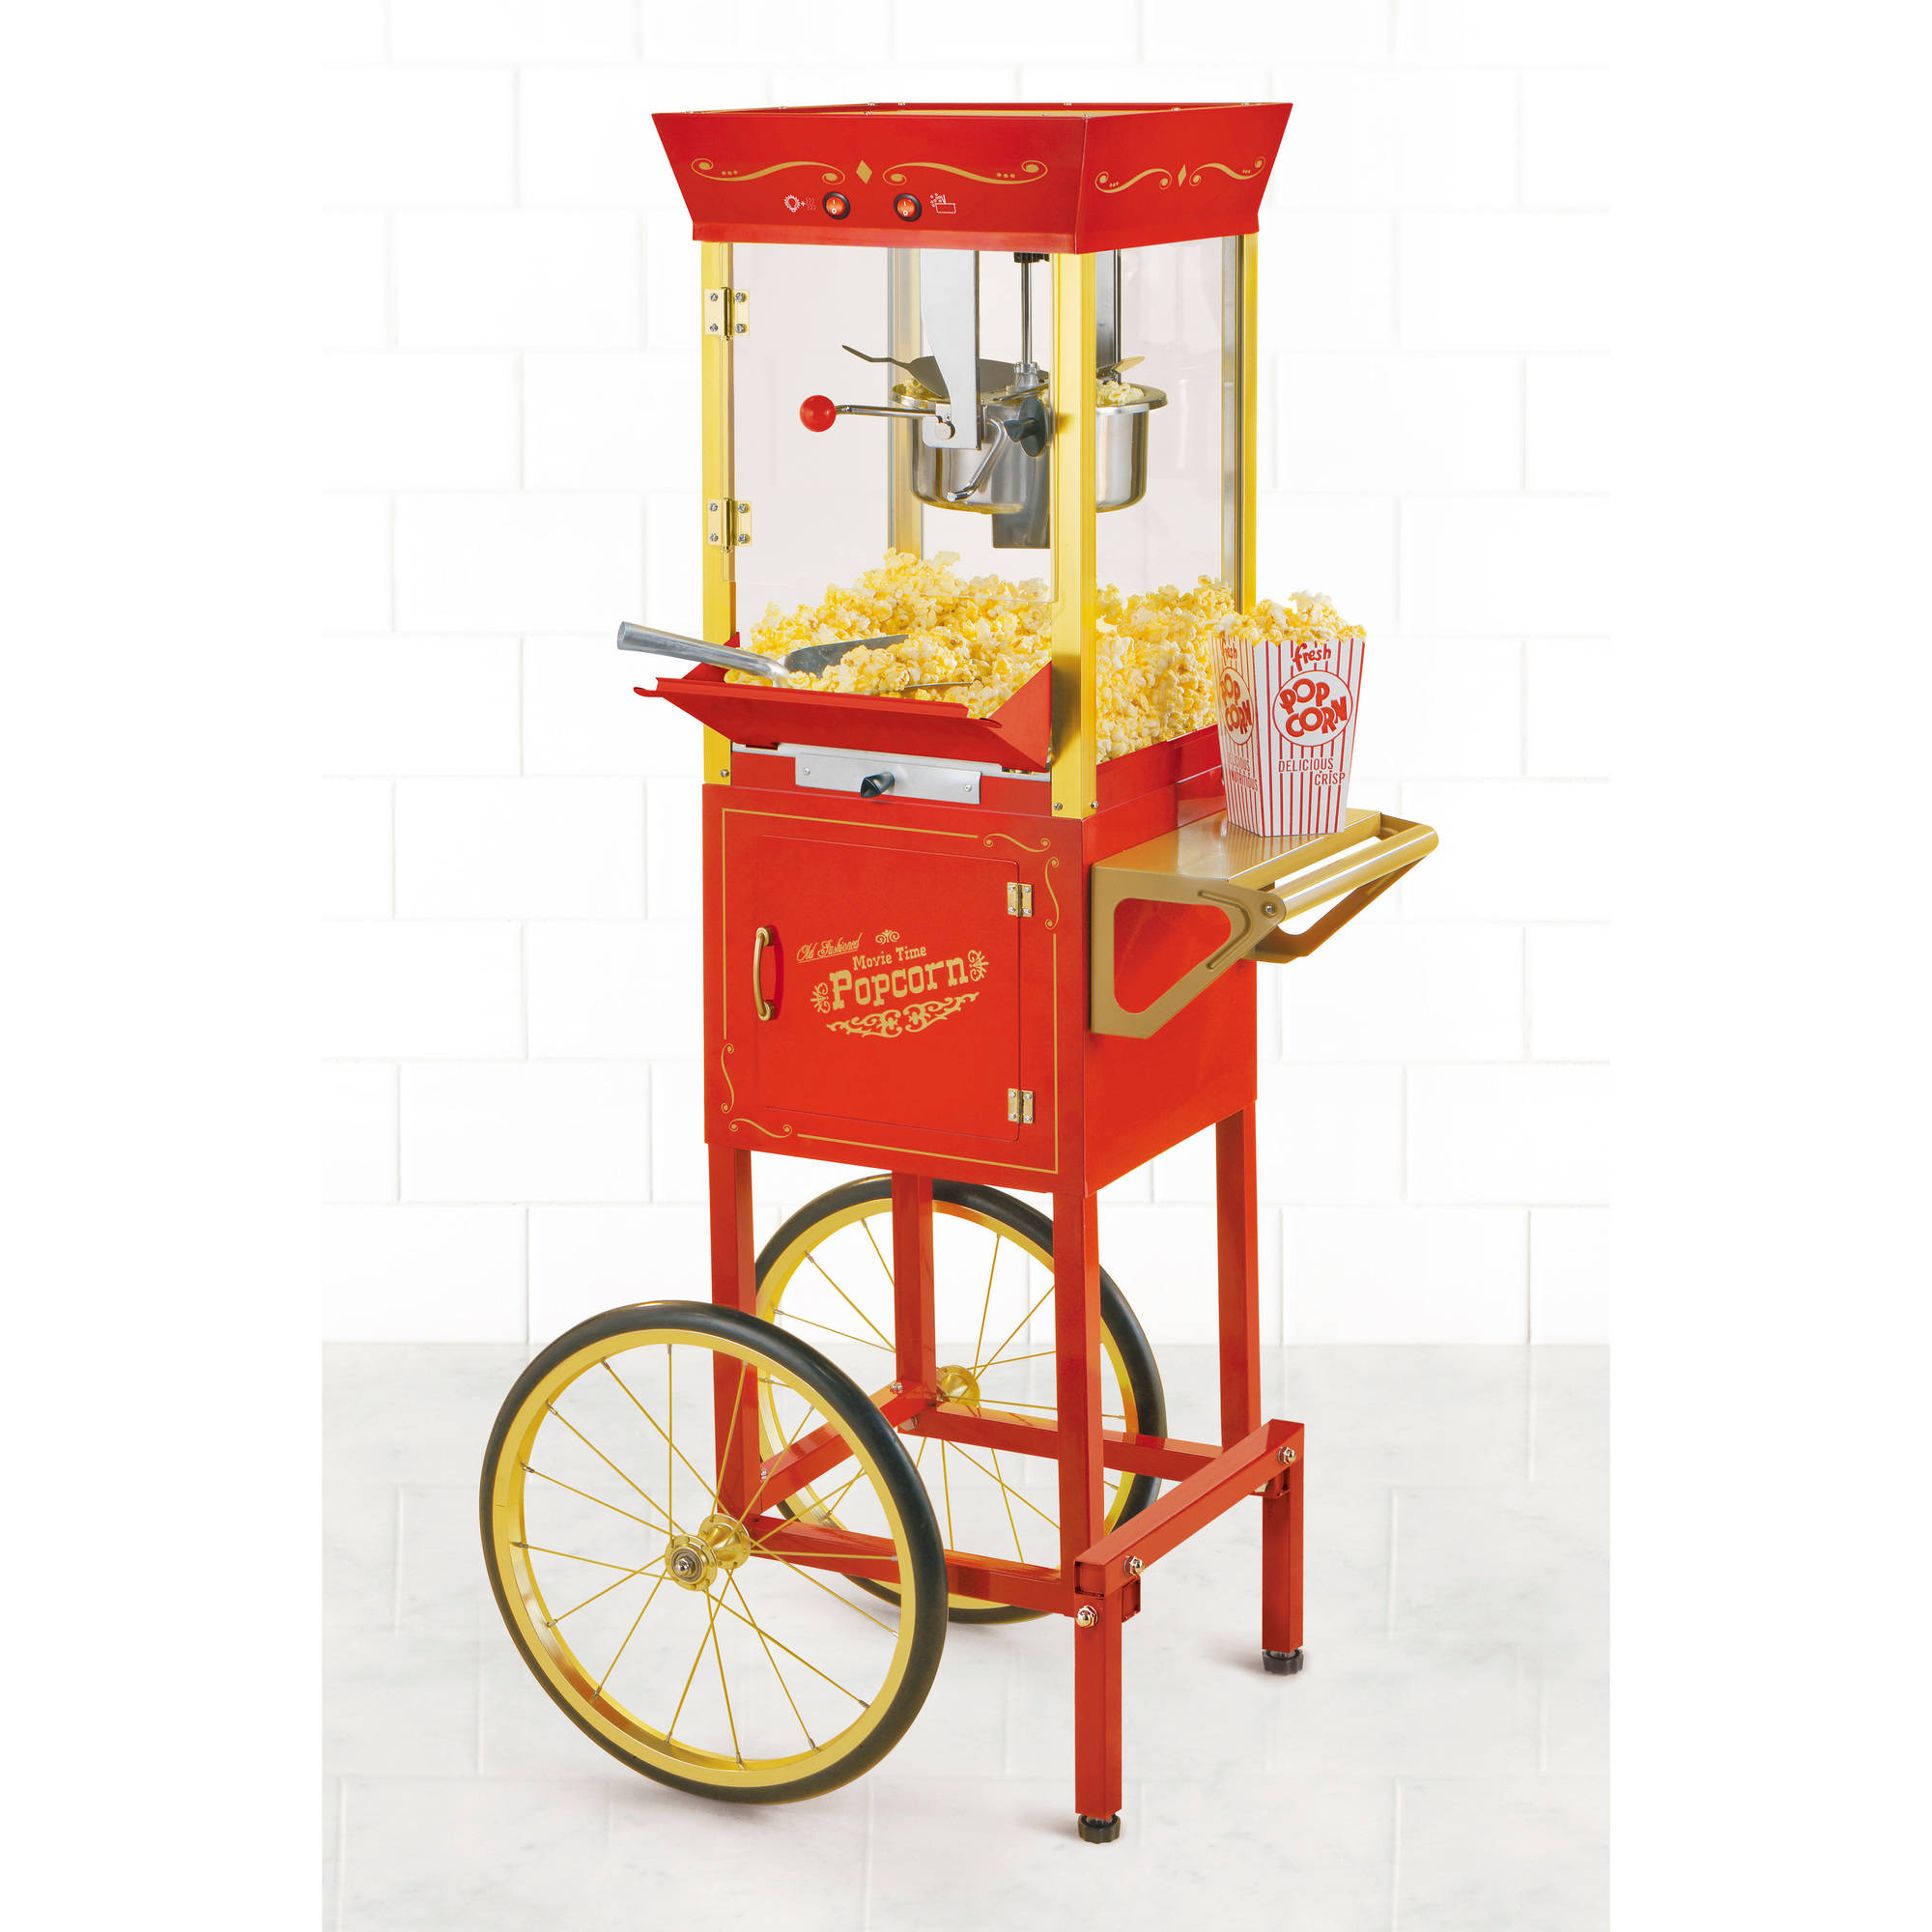 "Nostalgia Electrics 53"" Tall Vintage Collection 6-Ounce Kettle Commercial Popcorn Cart, CCP510"